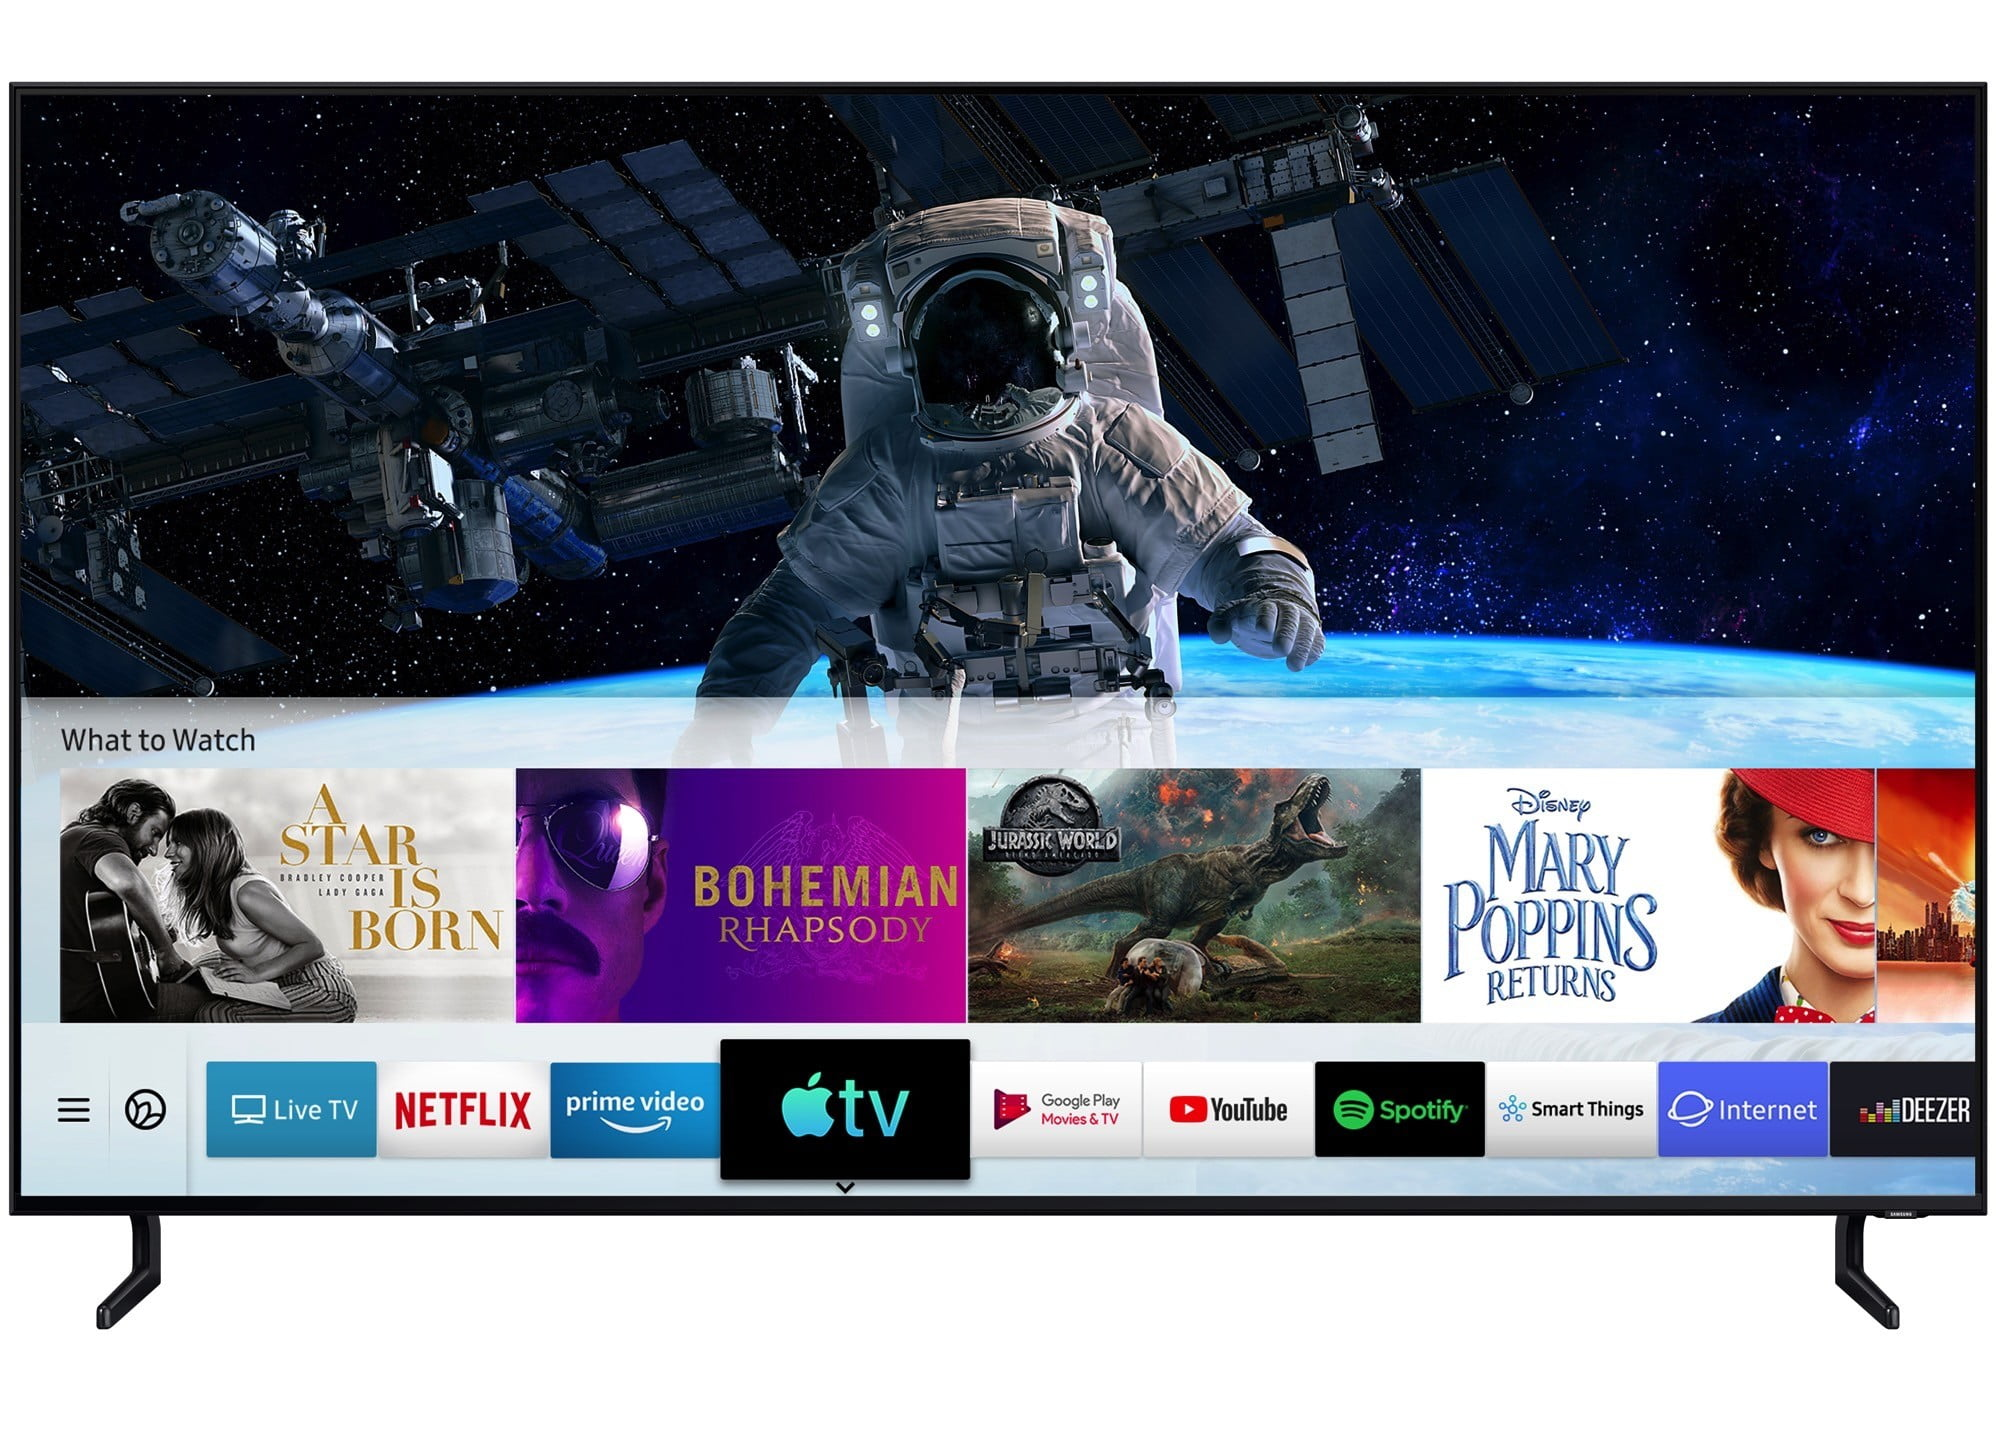 Samsung's TVs Are First to Get AirPlay 2, Apple TV App, And iTunes